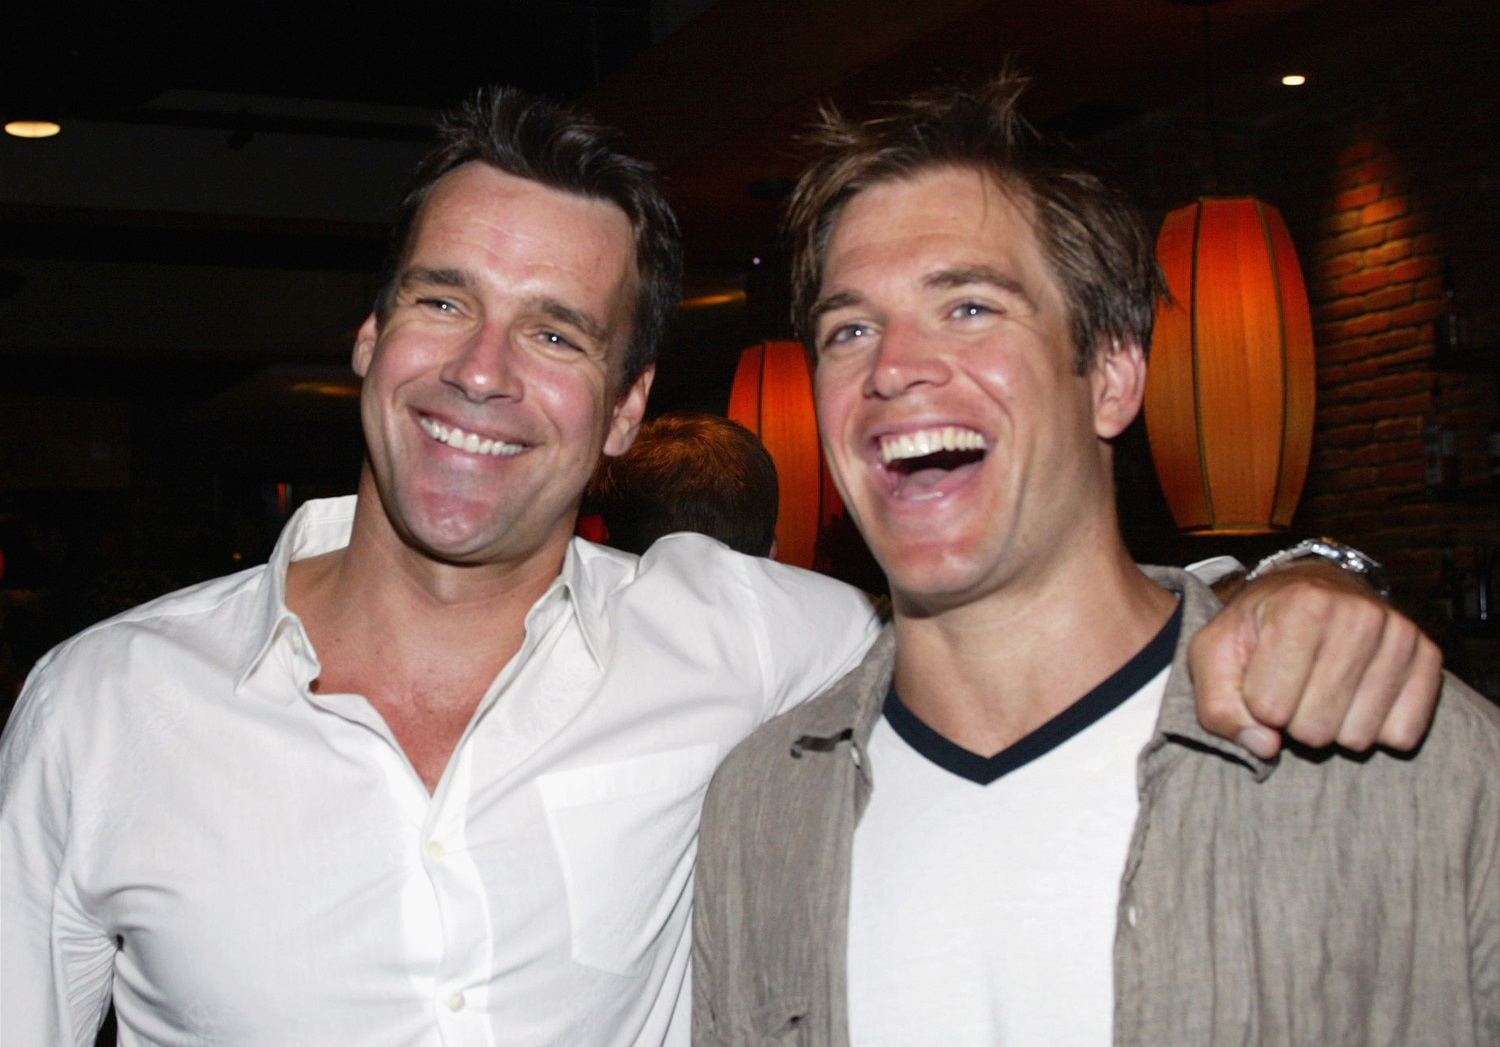 David James Elliot and Michael Weatherly from JAG and NCIS, respectively